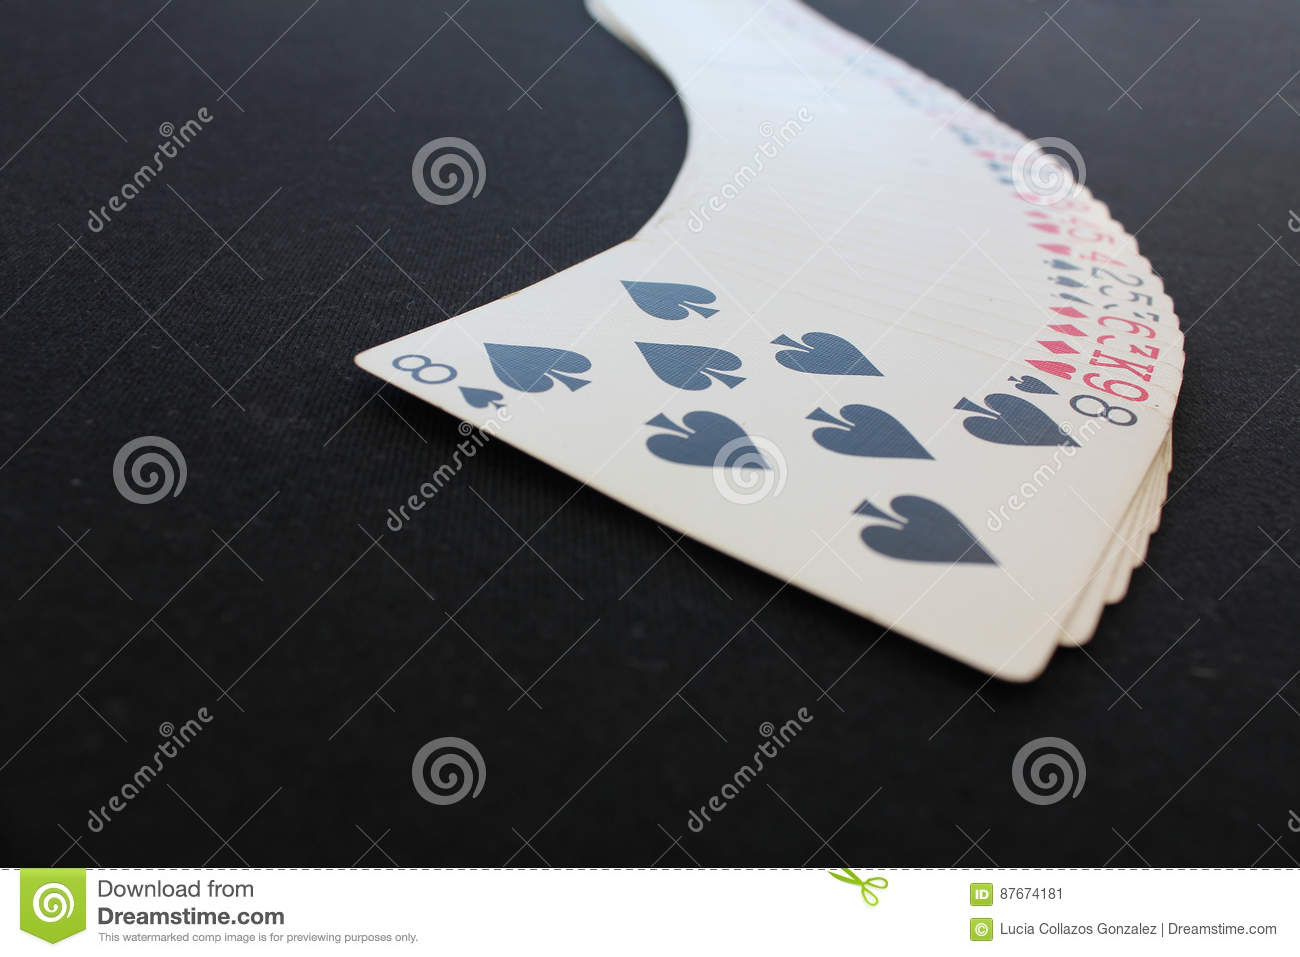 Poker table background - Playing Cards Poker Casino Isolated On Black Poker Table Background